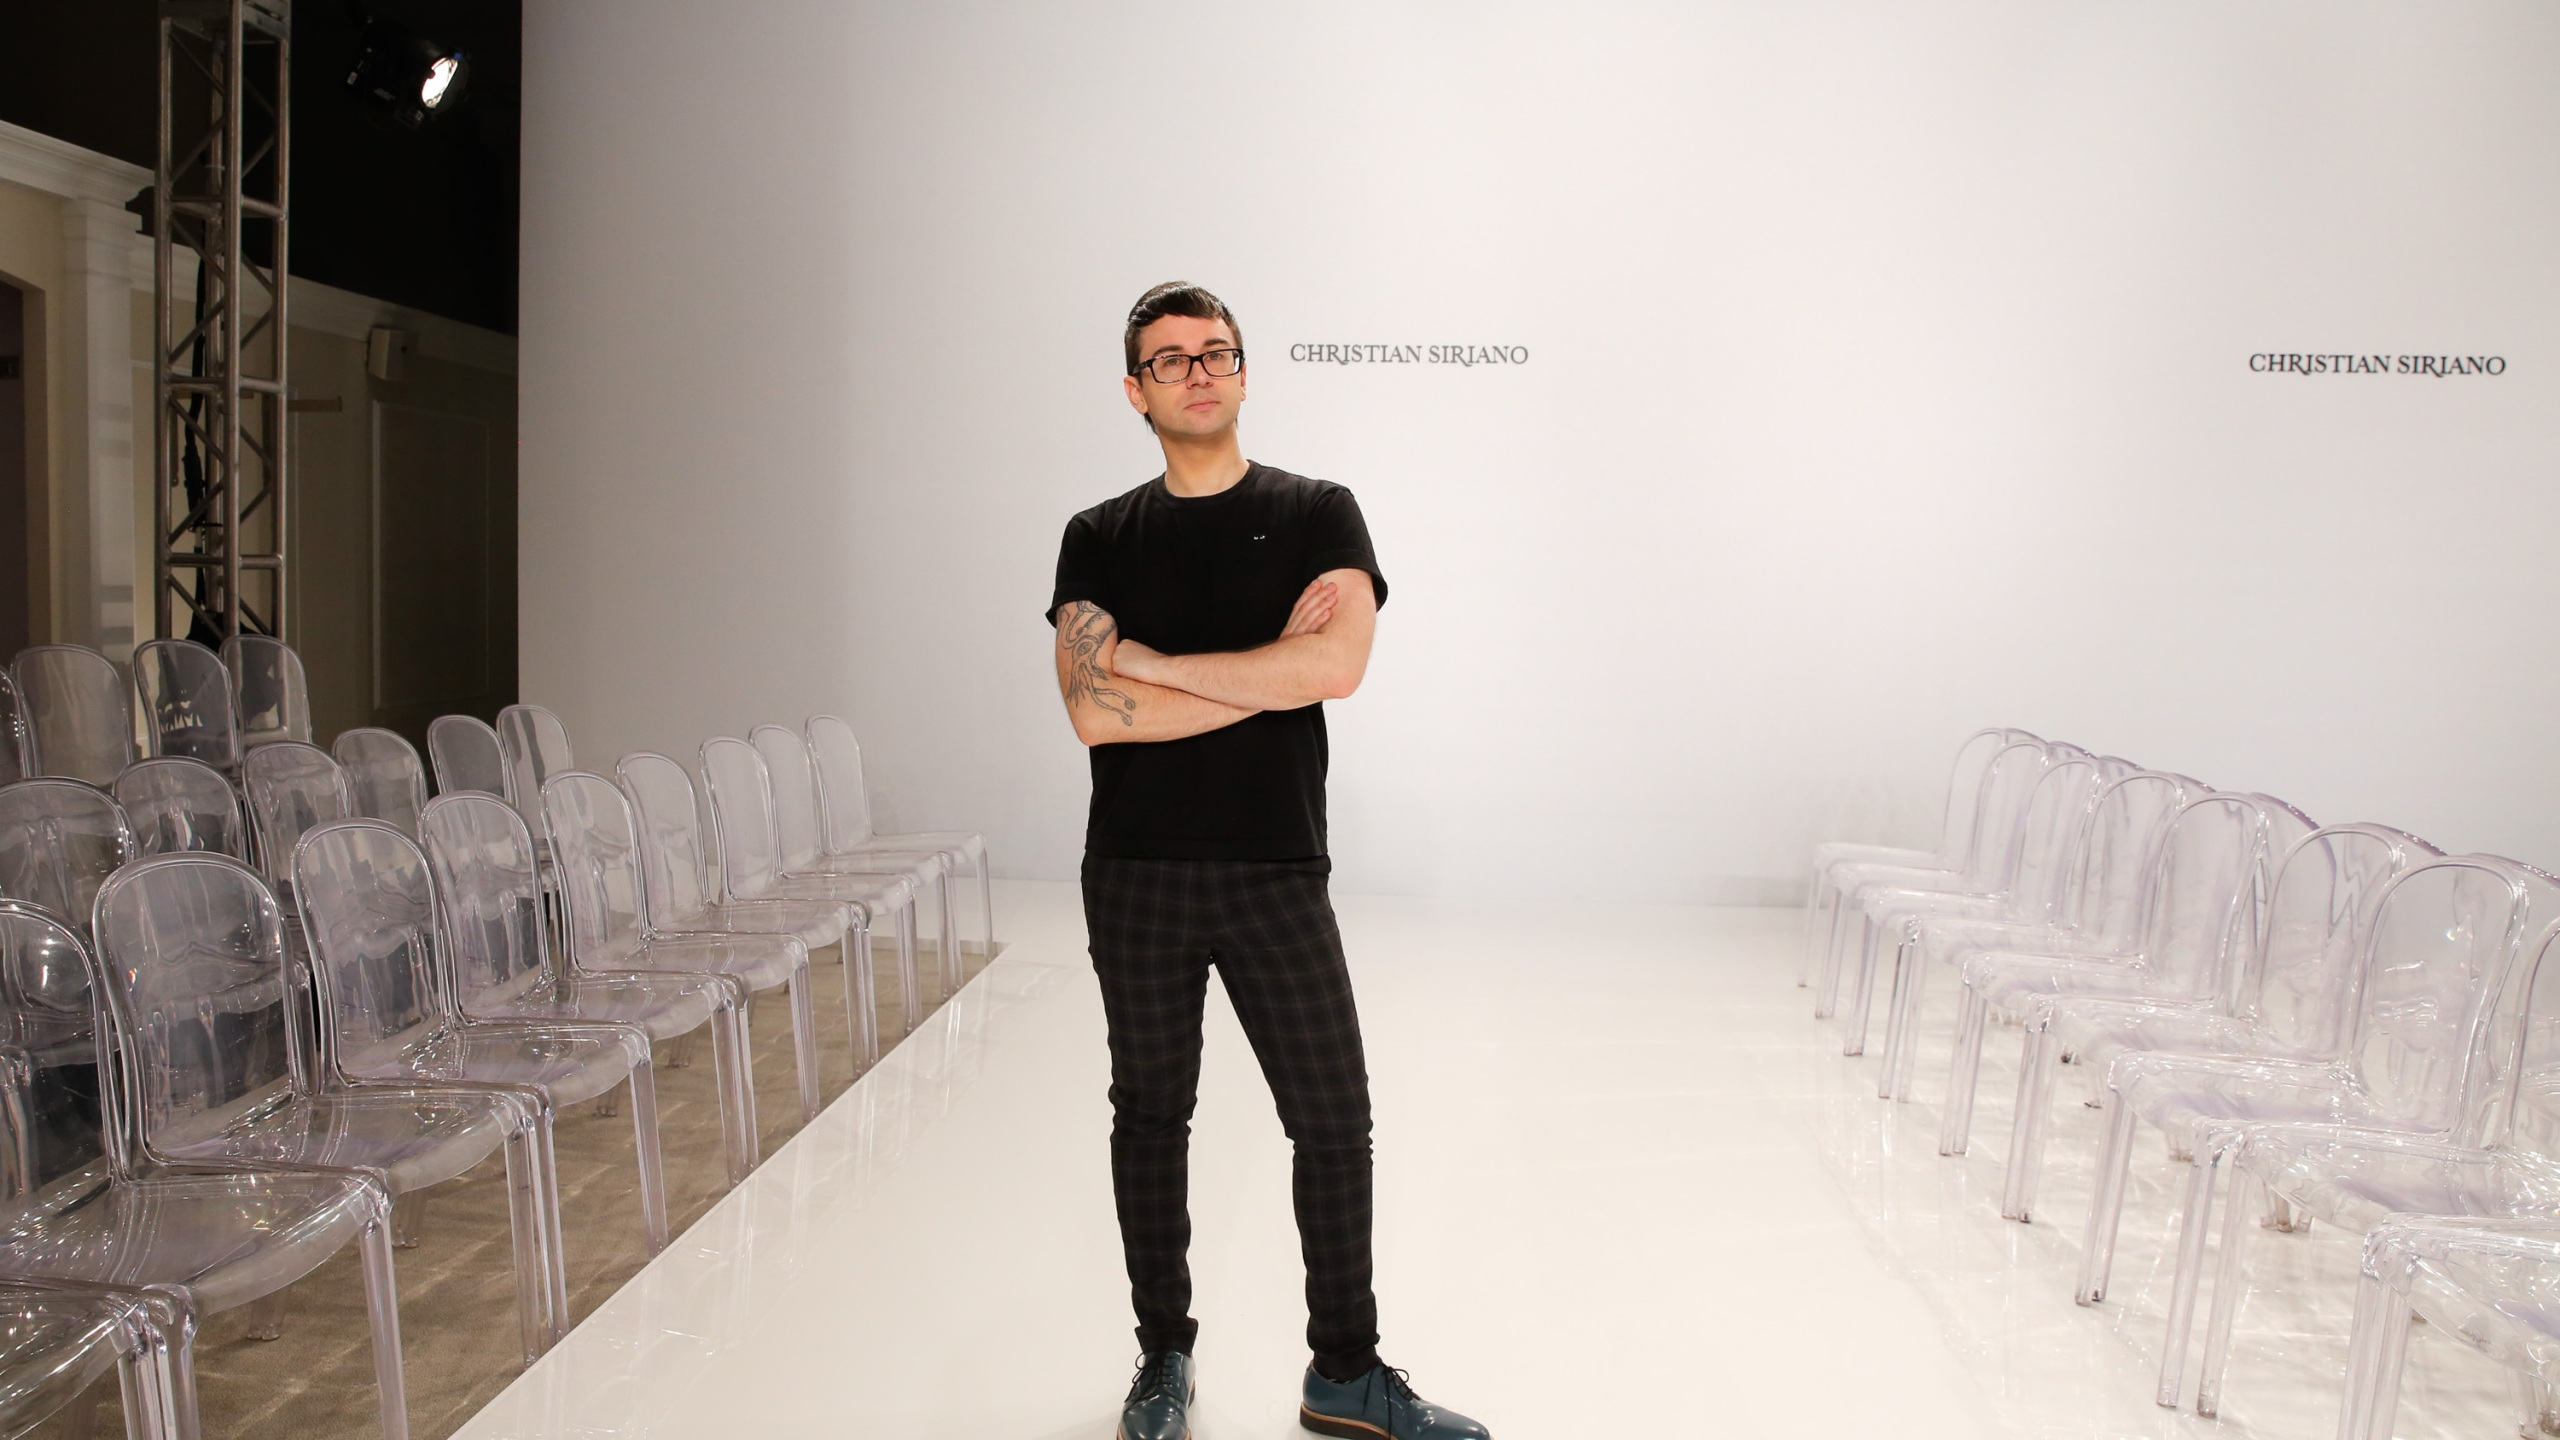 Designer Christian Siriano poses on the runway before his Christian Siriano For Kleinfeld Spring/Summer 2017 Bridal Collection at Kleinfeld on April 18, 2016 in New York City. (JP Yim/Getty Images)